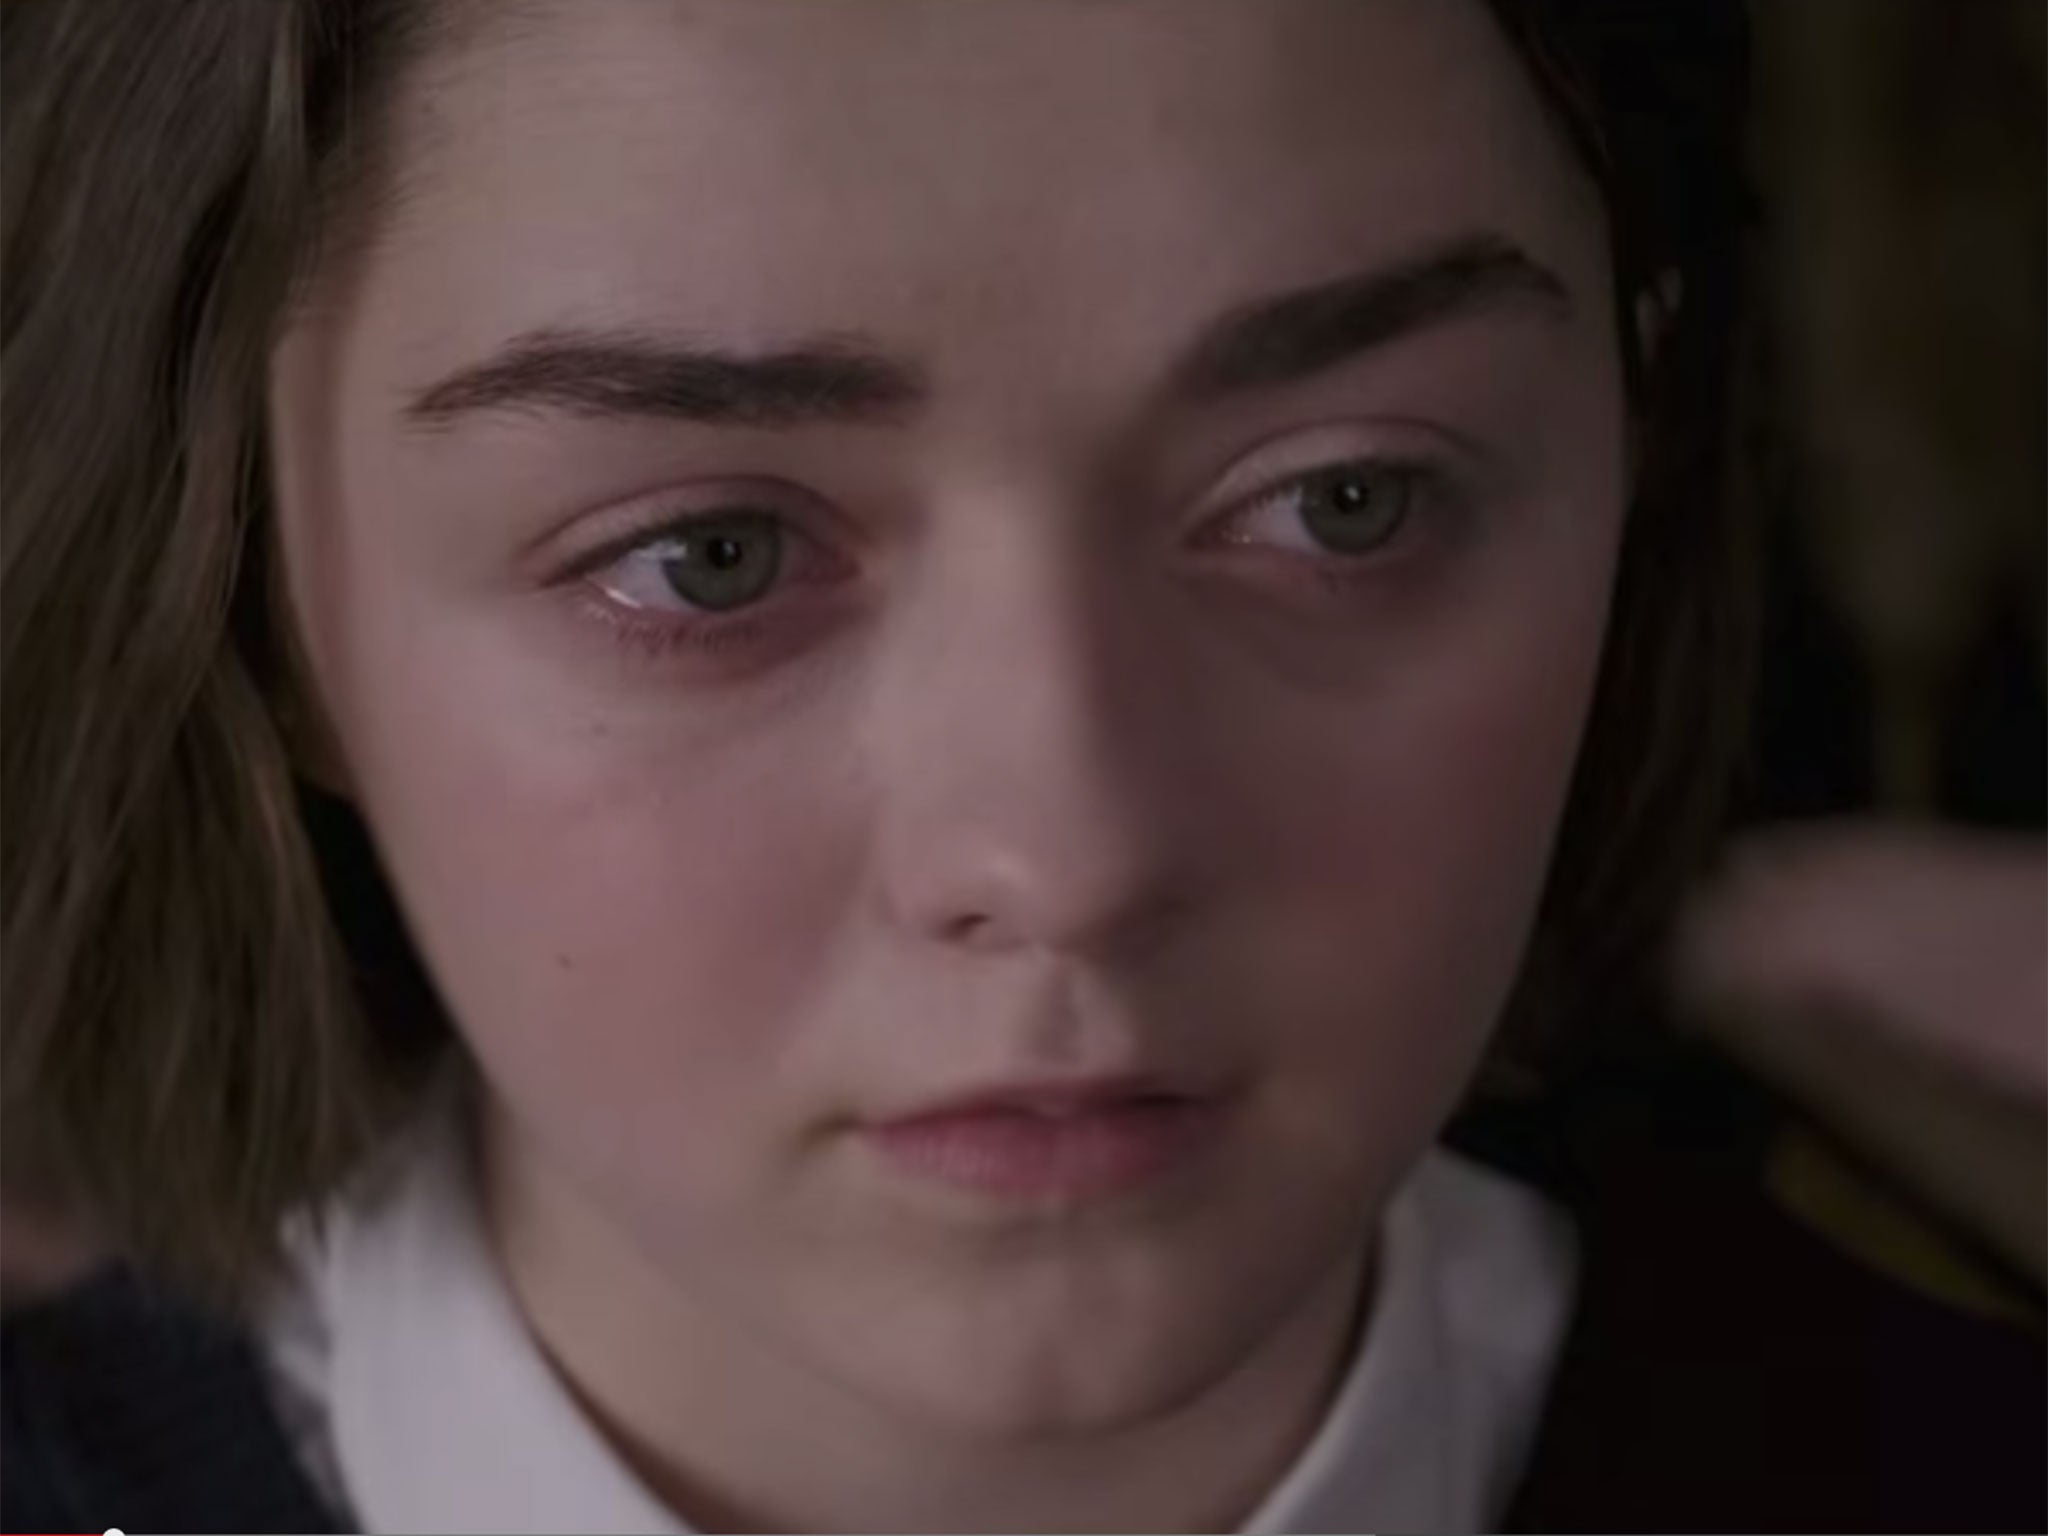 Maisie williams dating 50 year old